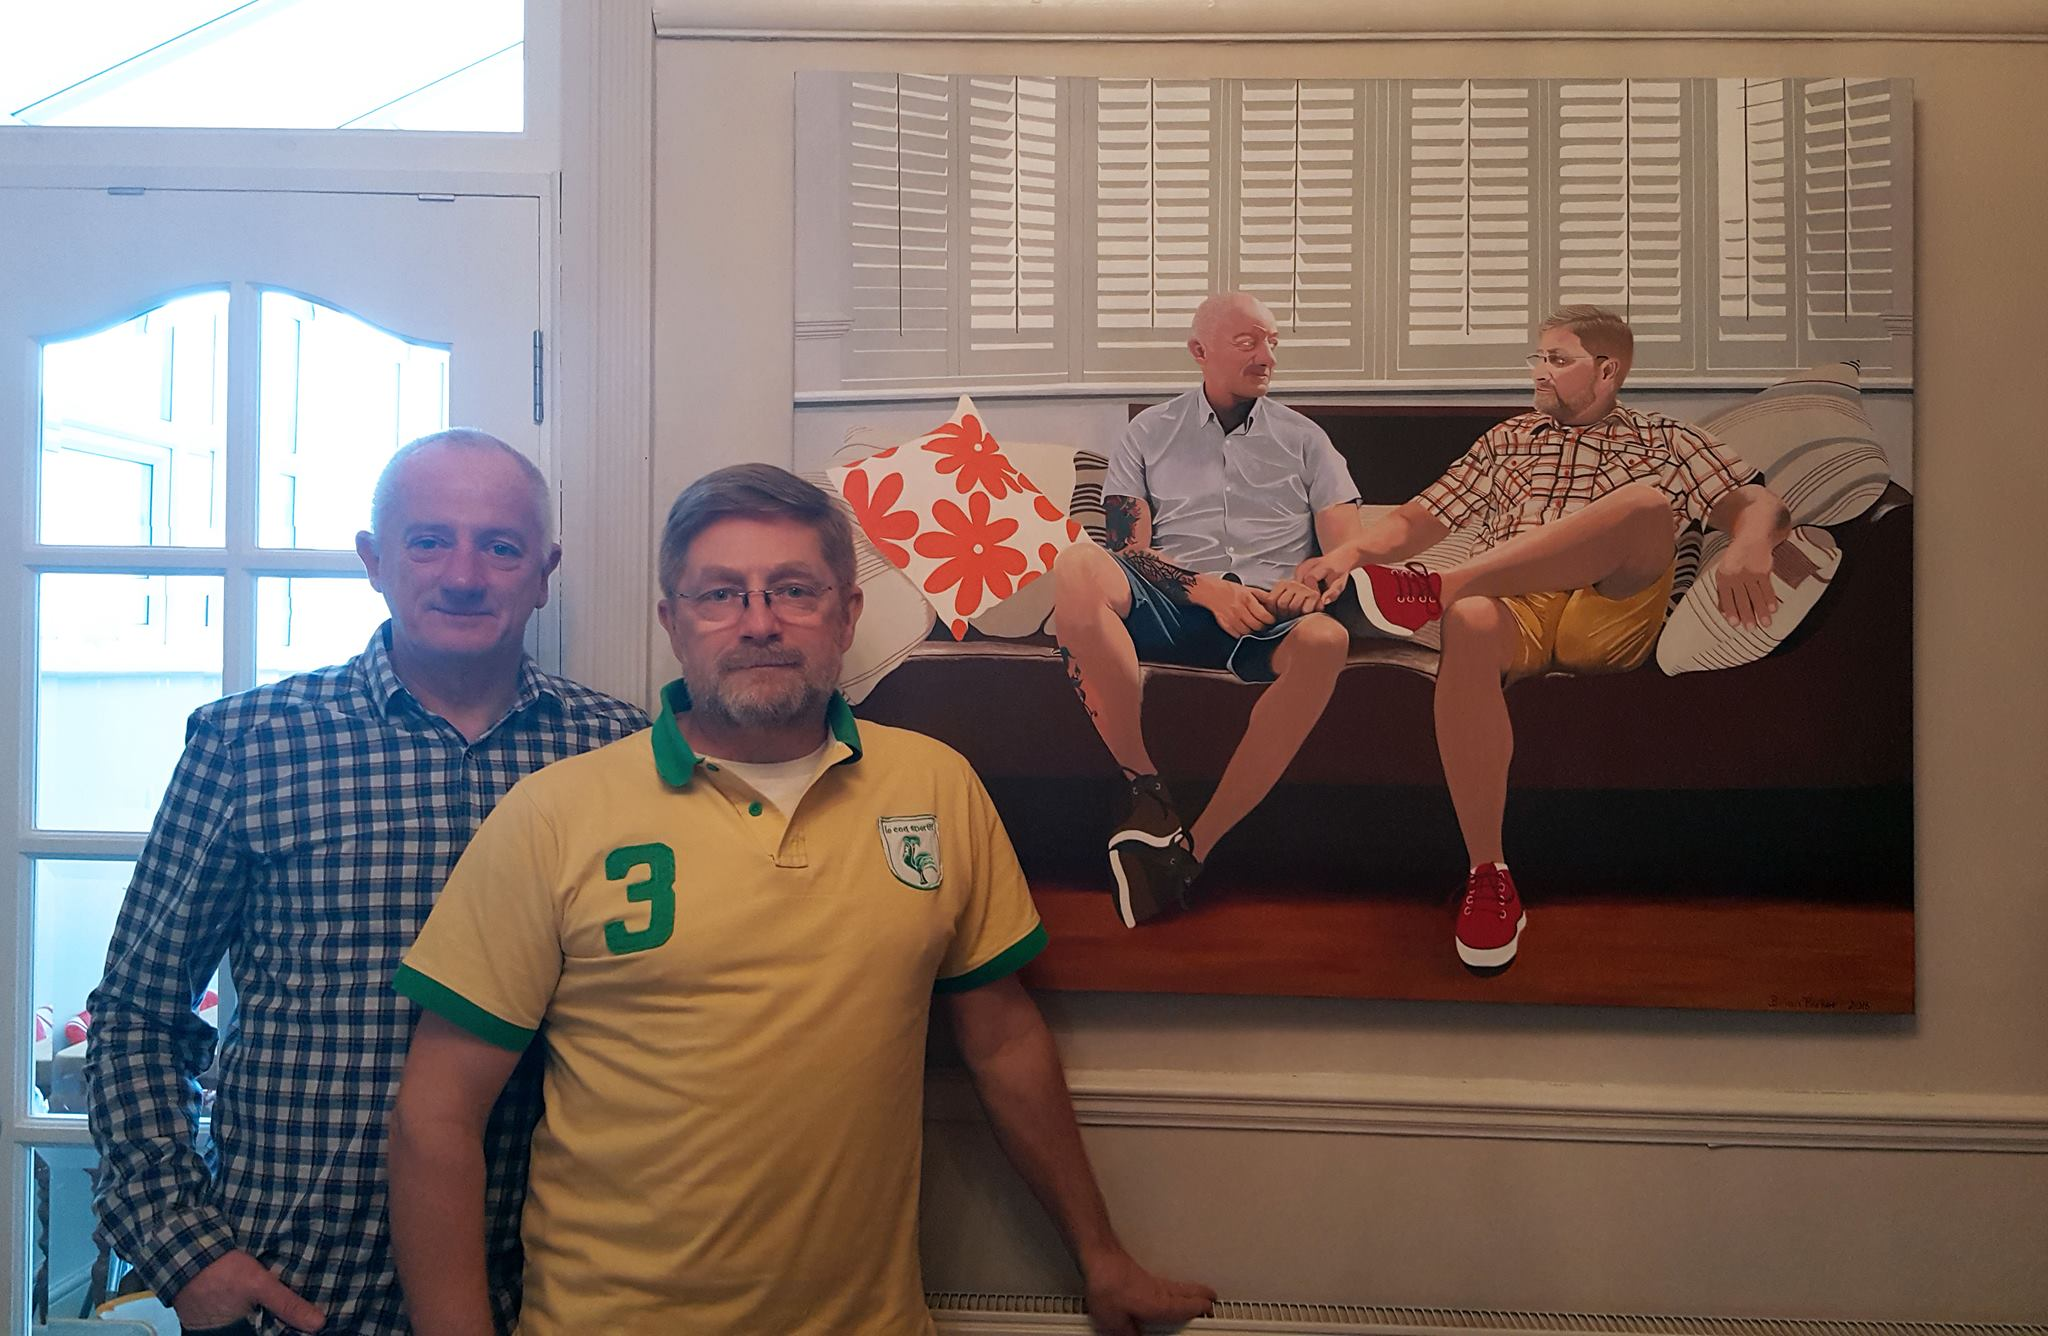 """Commisioned portrait of Dan and Steve entitled """"Husbands"""" on show in their living room."""